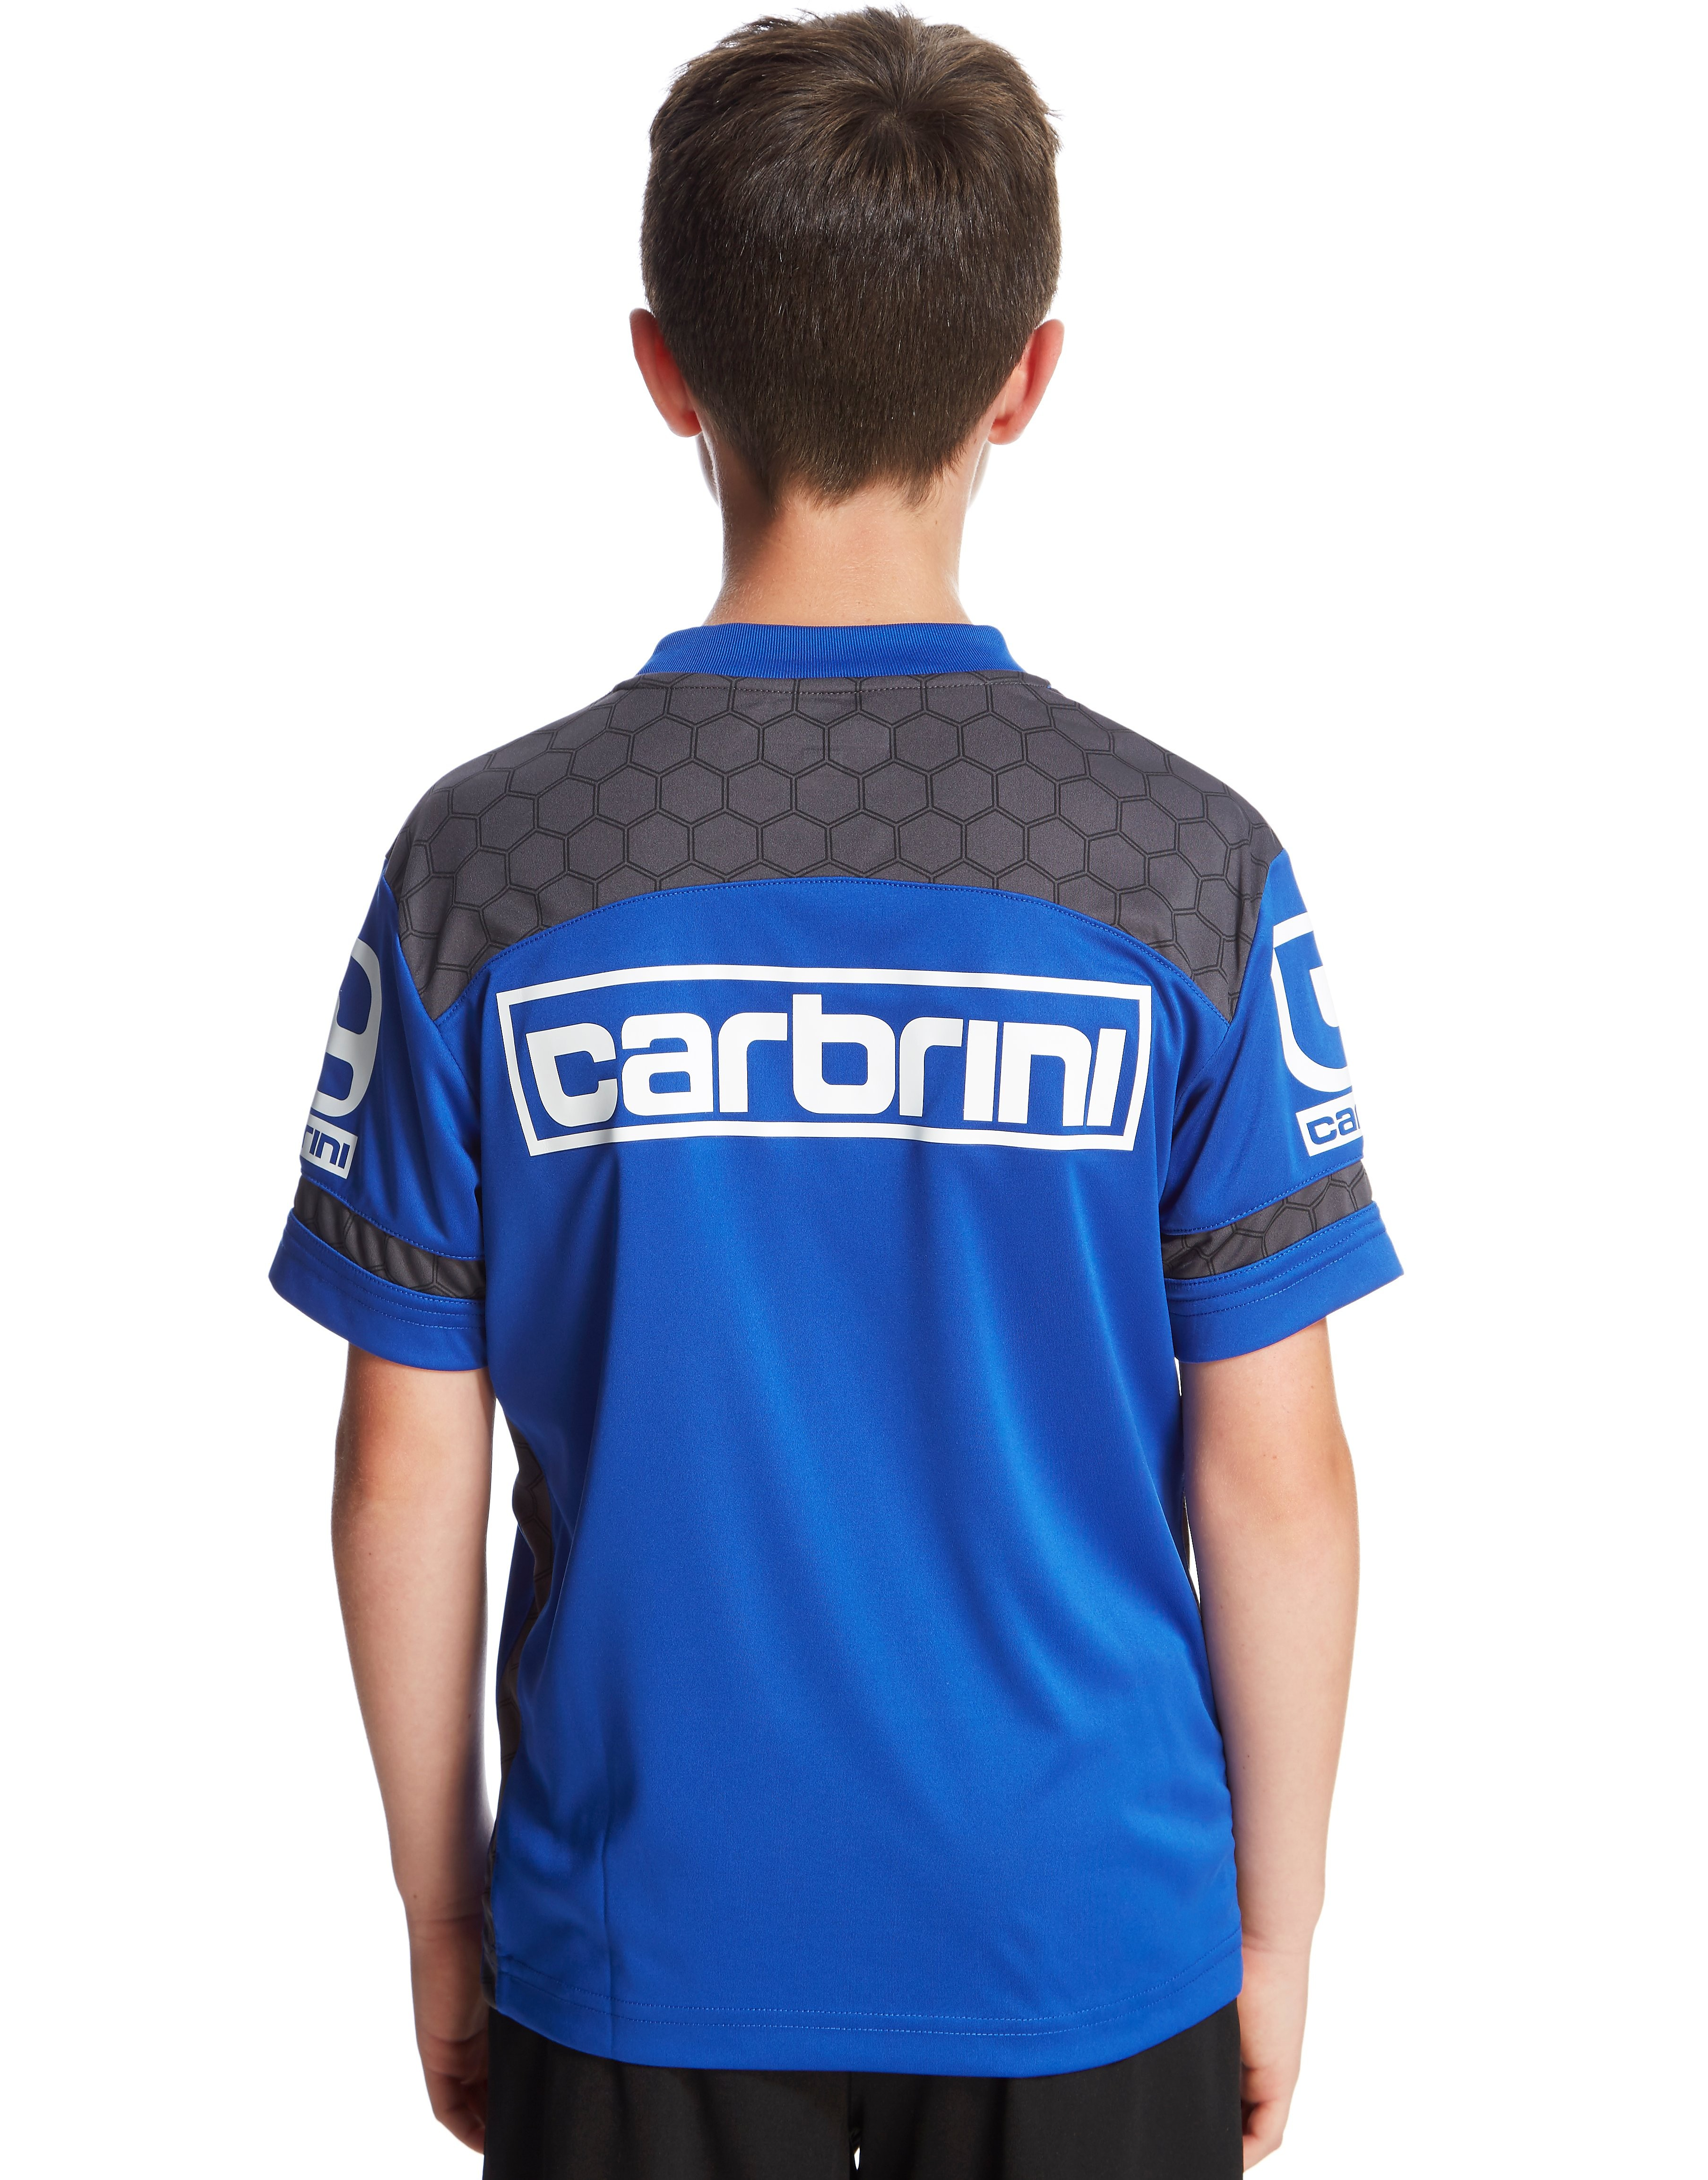 Carbrini Birmingham City FC 2015/16 T-Shirt Junior